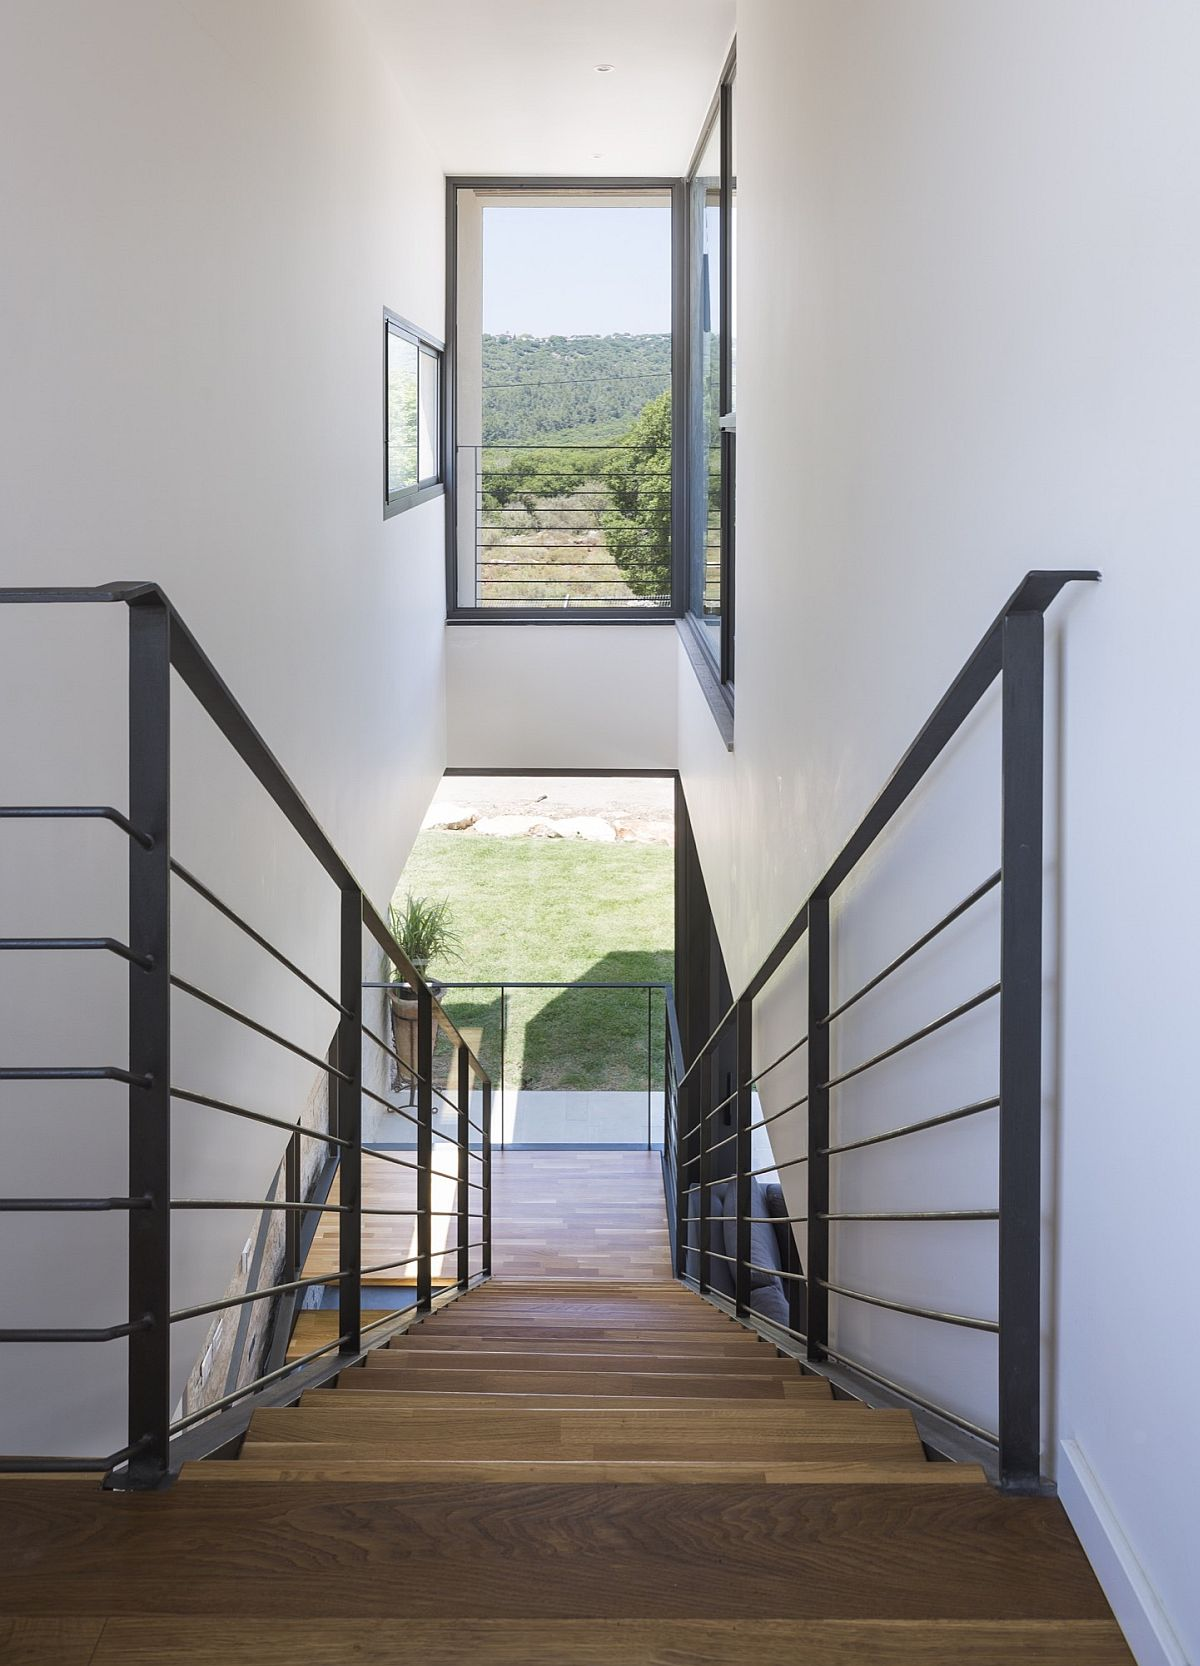 Smart use of windows and stairwell brings in ample natural light